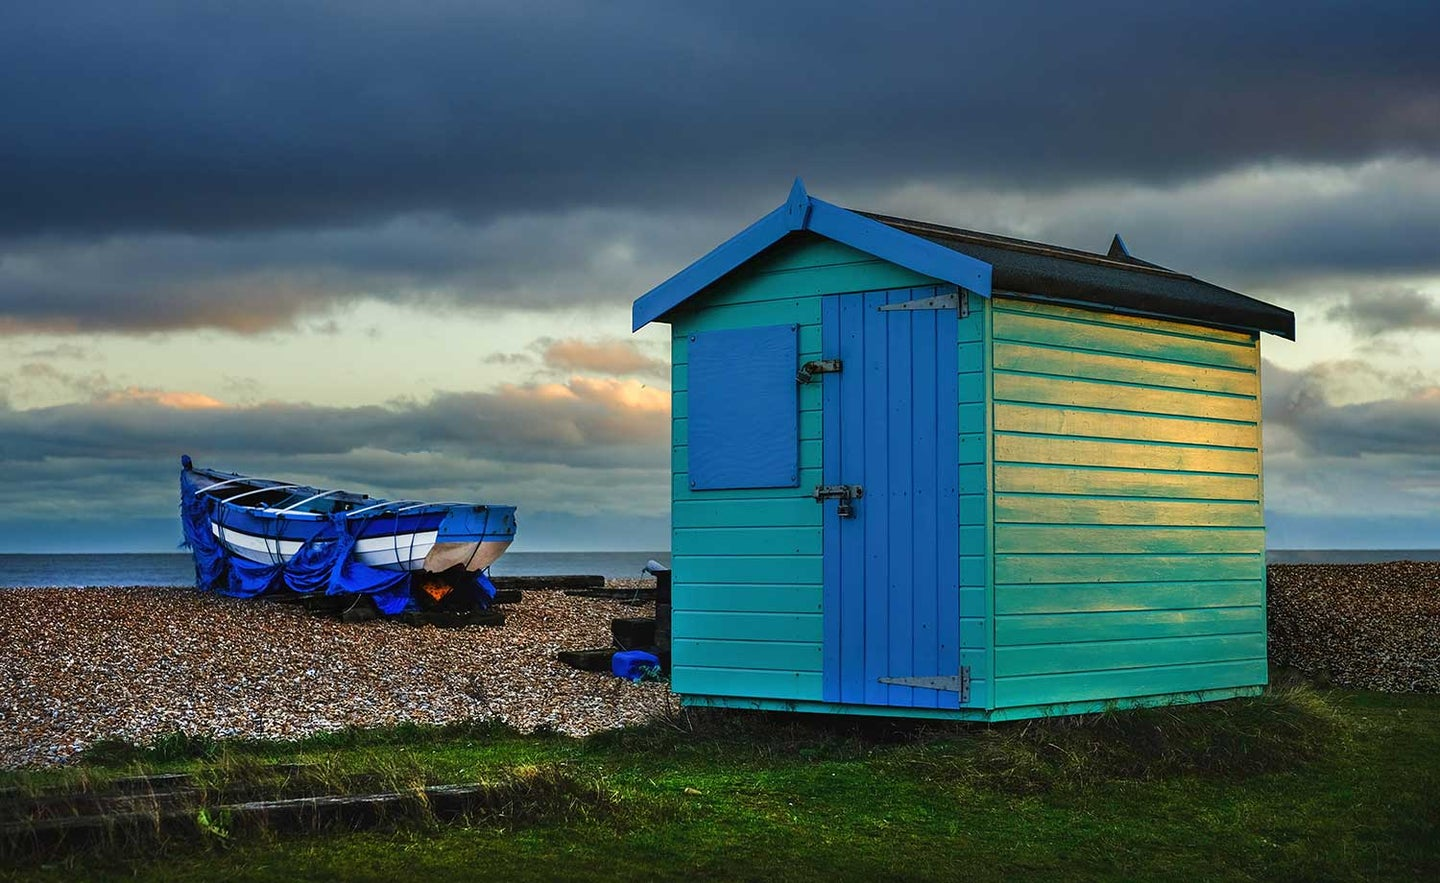 Three Things To Remember When Choosing An Outdoor Storage Shed